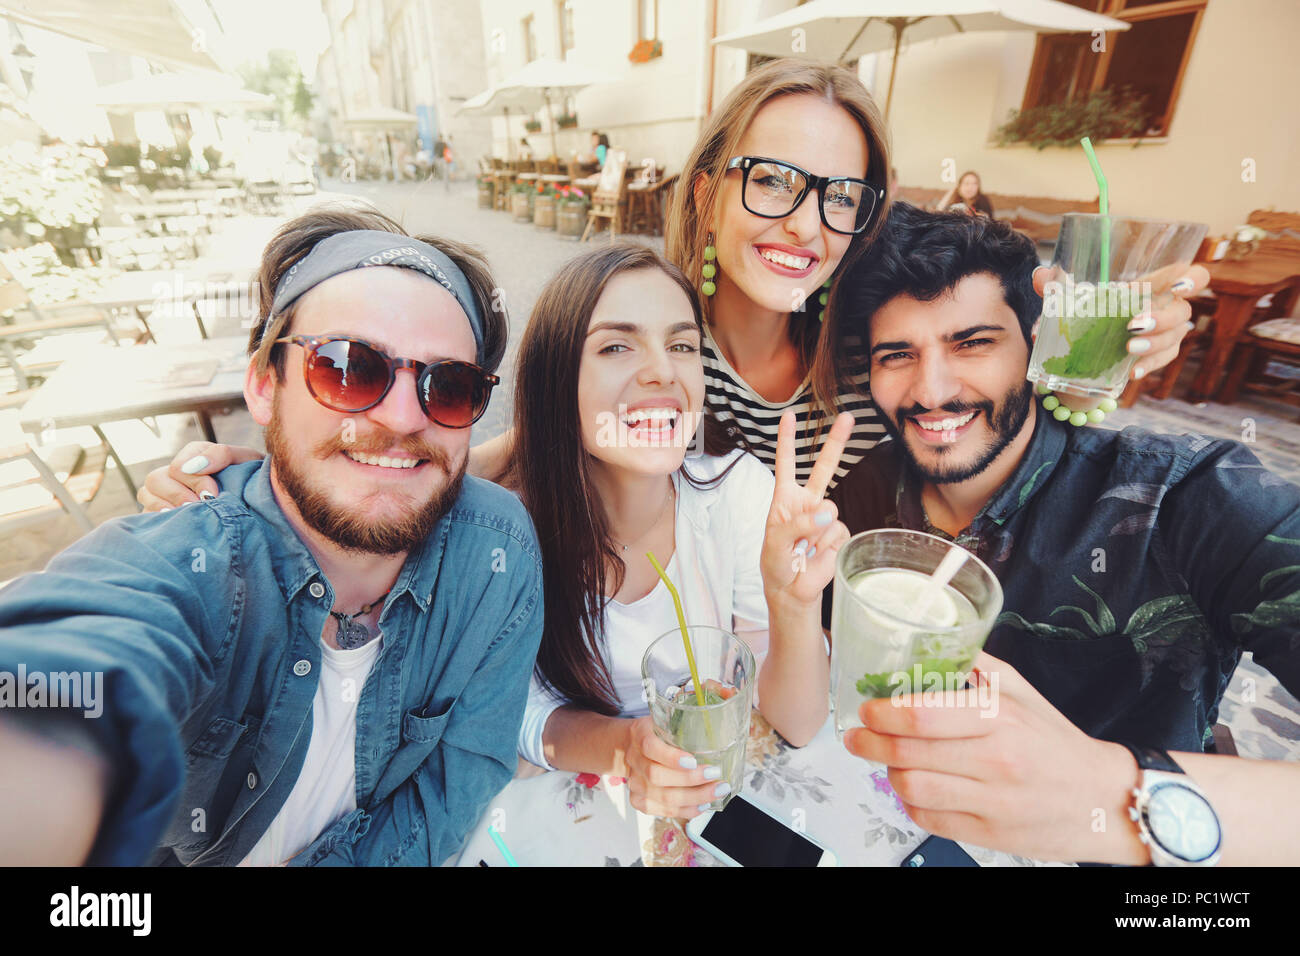 Four joyful cheerful friends taking a selfie while sitting together at cafe and showing peace gesture outdoors - Stock Image